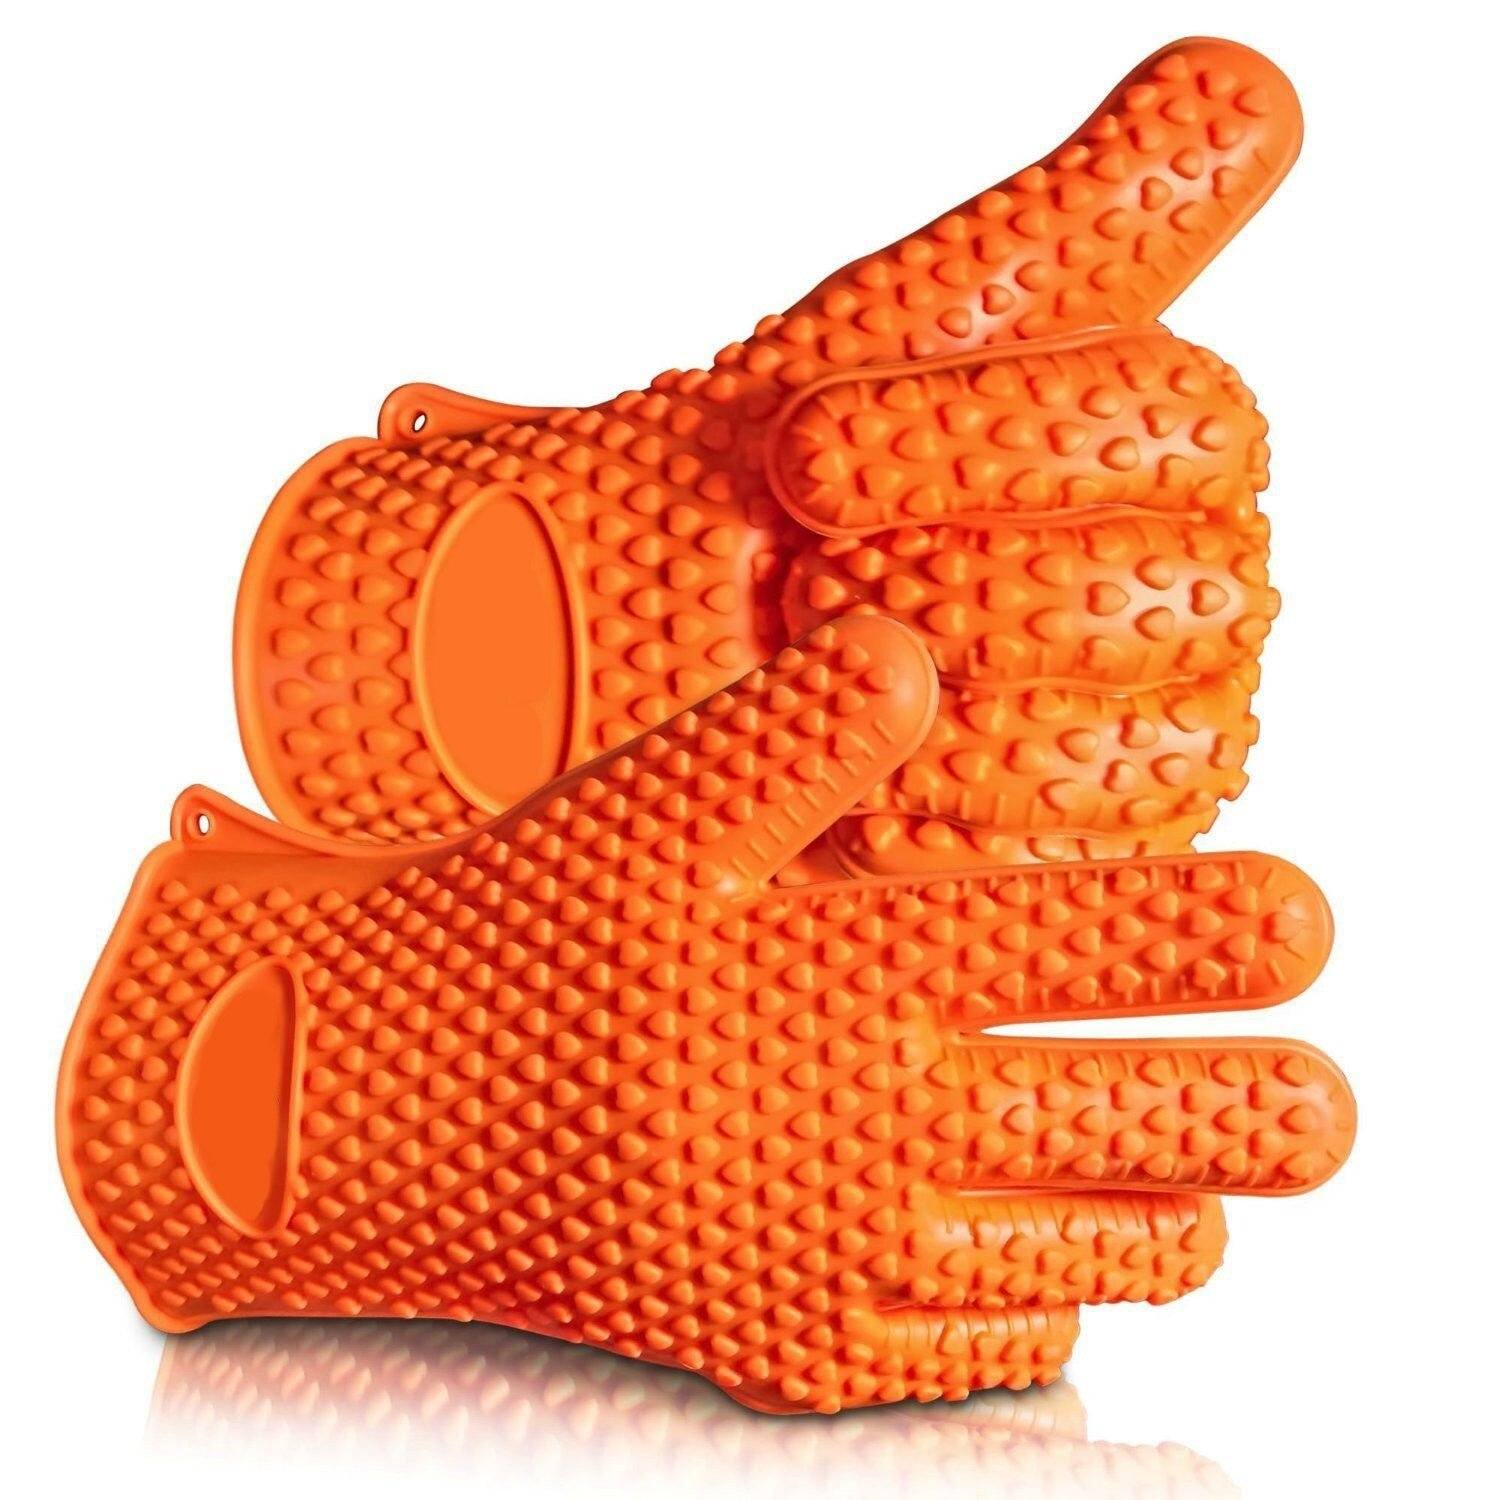 Heat Resistant Silicone Gloves for BBQ, Smoker, Grill & Oven – Protect your Hands BBQ Grilling & Smoking Accessory I Love Grilling Meat